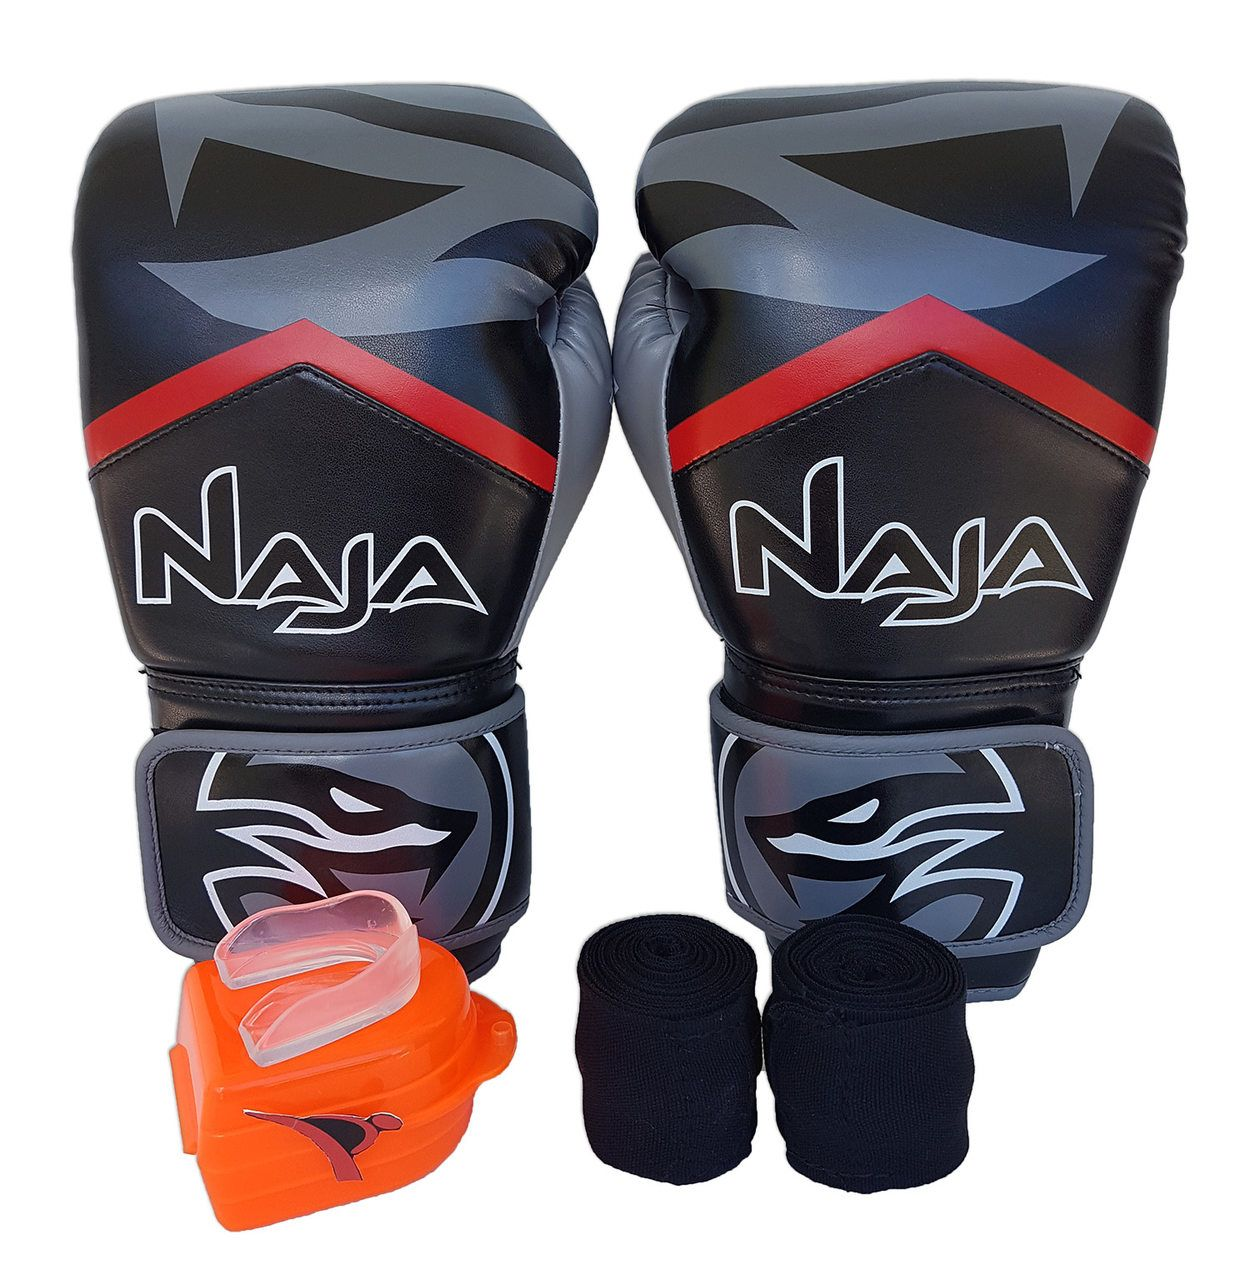 Kit De Boxe / Muay Thai 14oz - Preto - New Extreme - Naja - PRALUTA SHOP